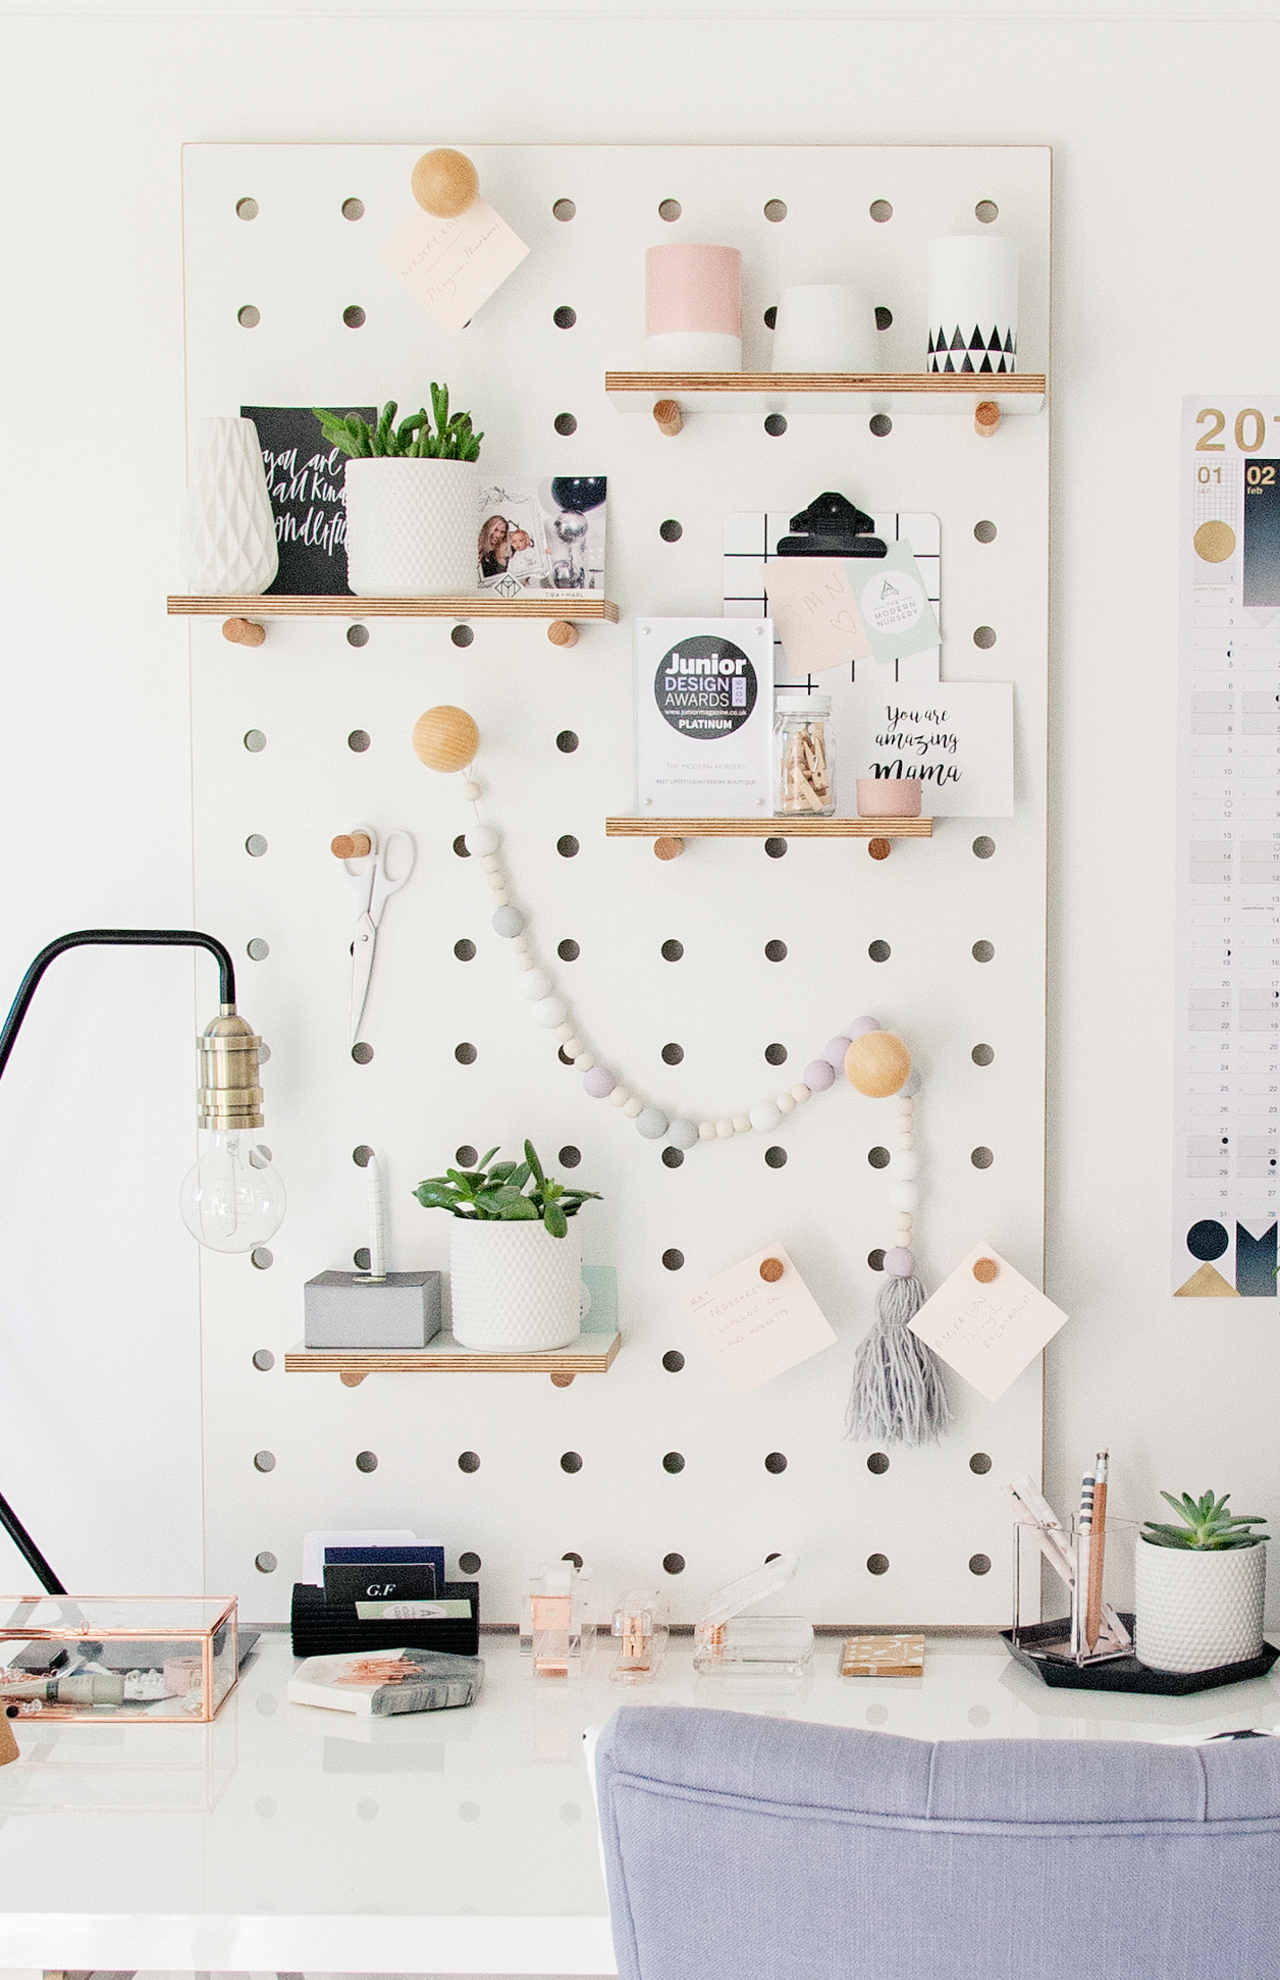 Pegboard With Shelves And Pegs White Pegboard Ideas In Ideas Pegboard Pegs Shelves White In 2020 White Pegboard Home Office Decor Peg Board Walls